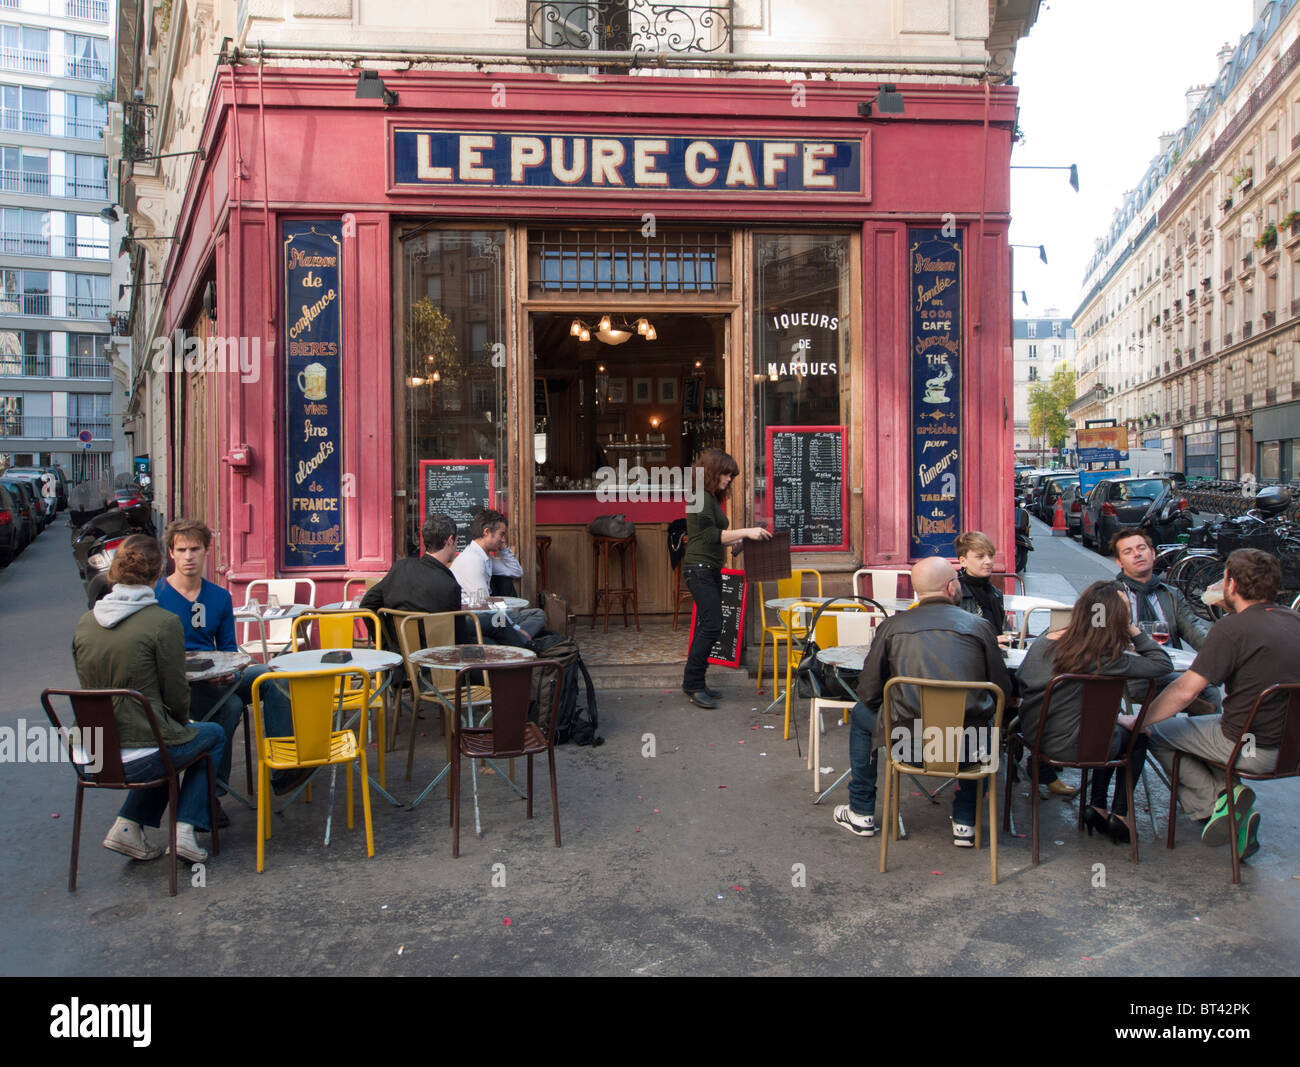 Typical cafe on street corner in Marais district of Paris France - Stock Image